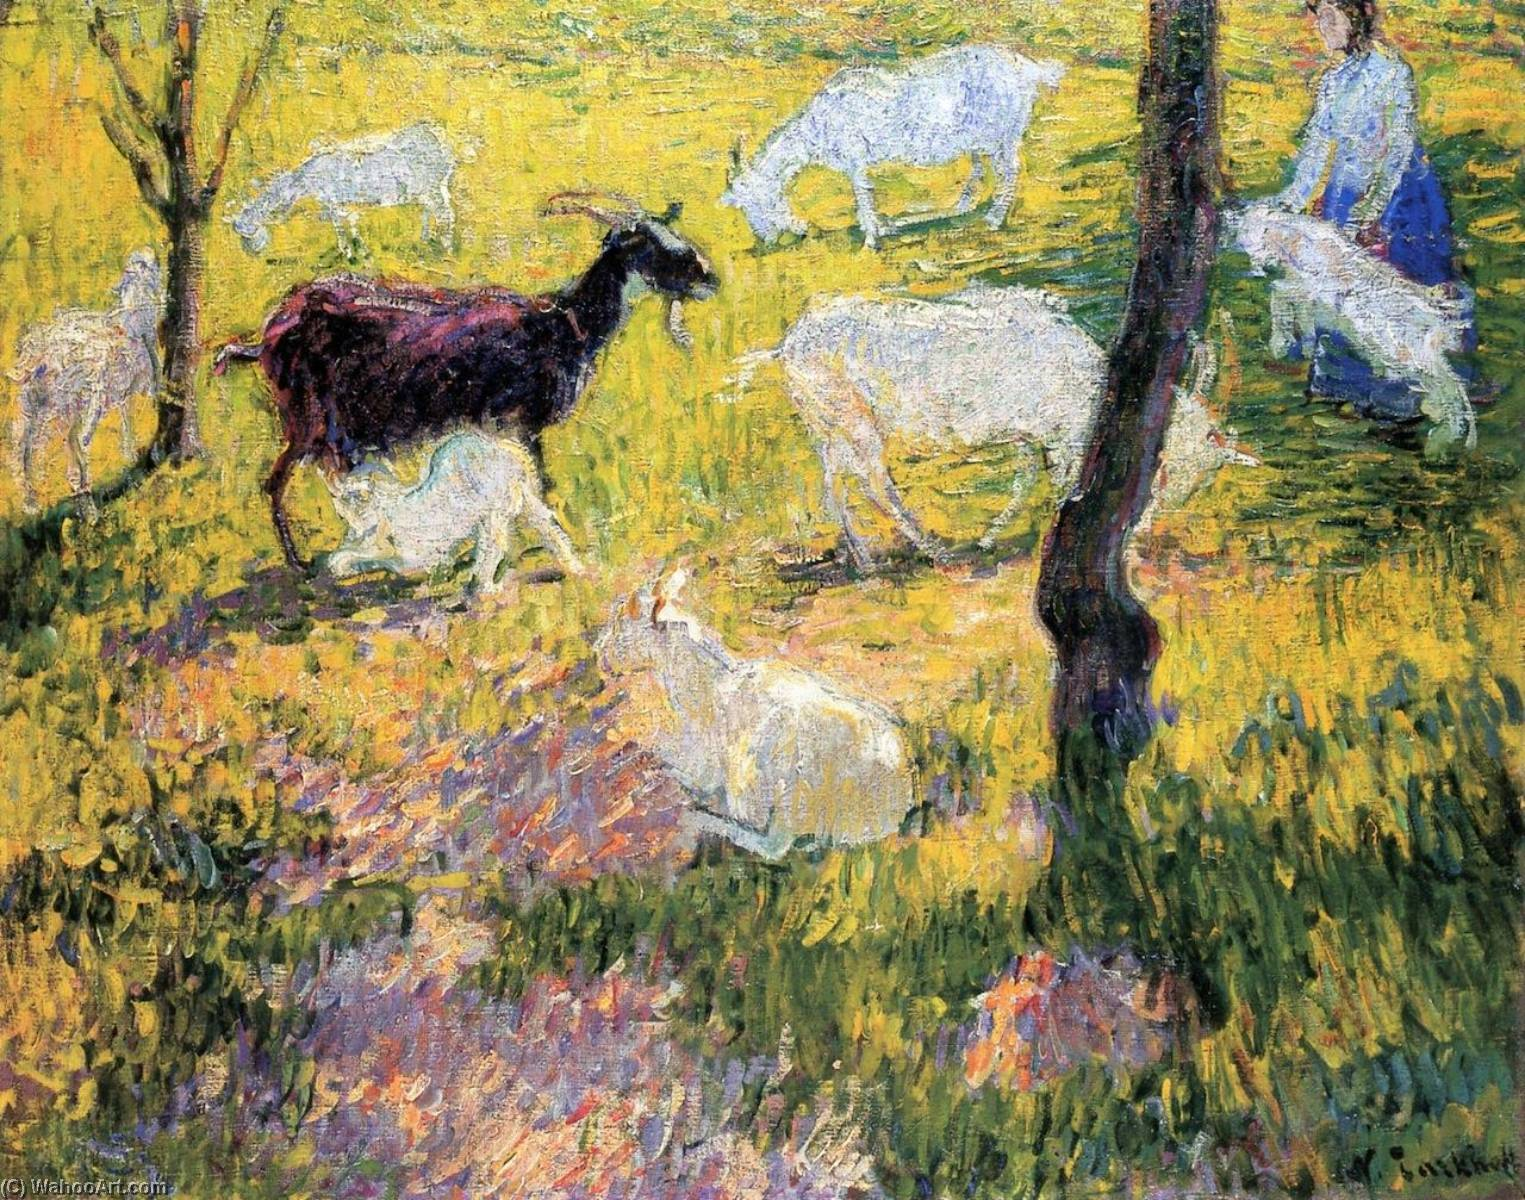 Goats in the Field by Nicolas Tarkhoff (1871-1930) | WahooArt.com